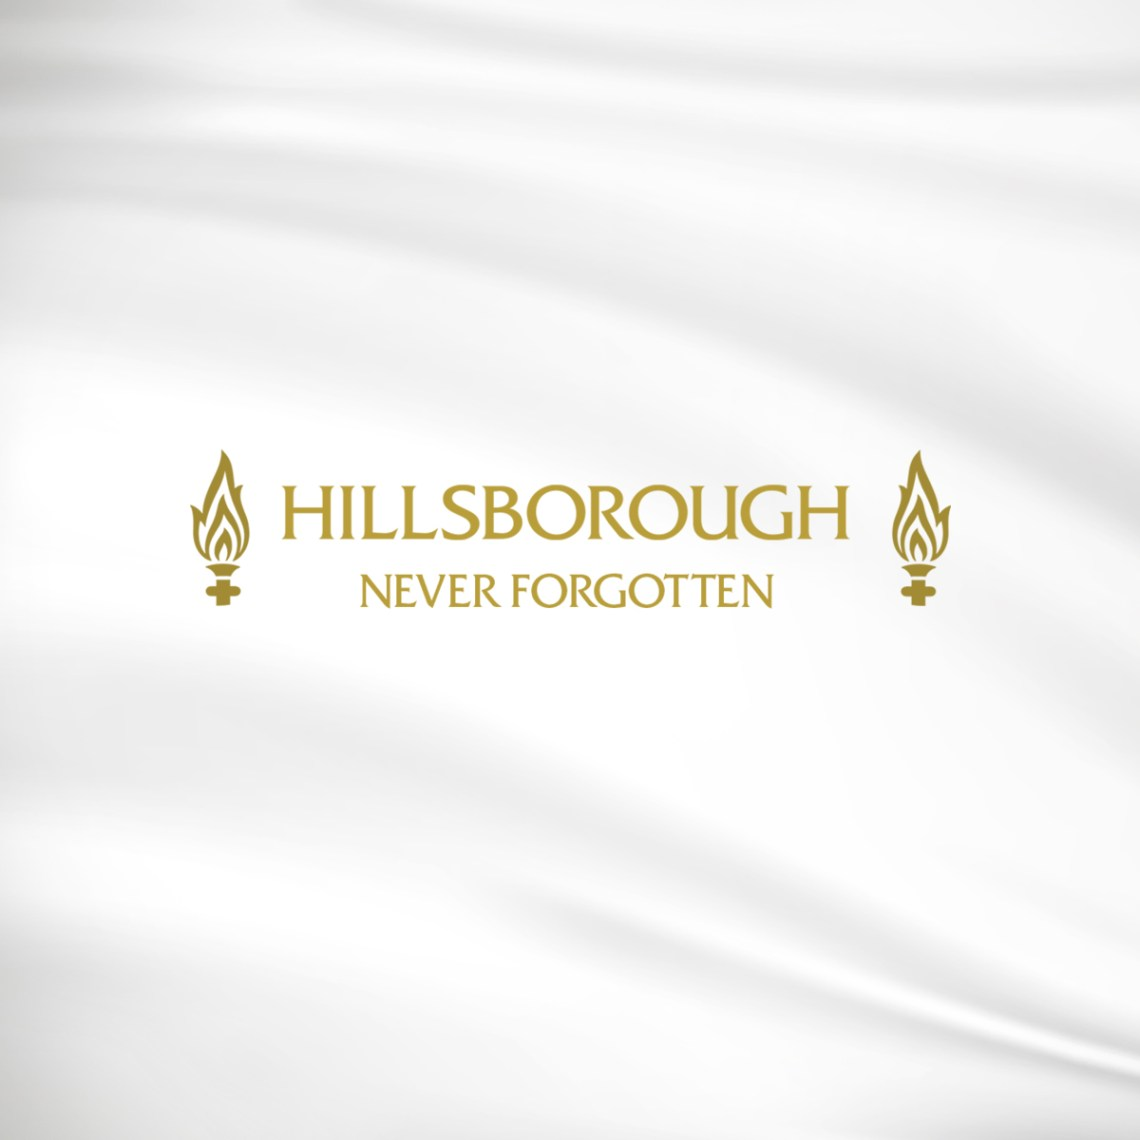 hillsborough